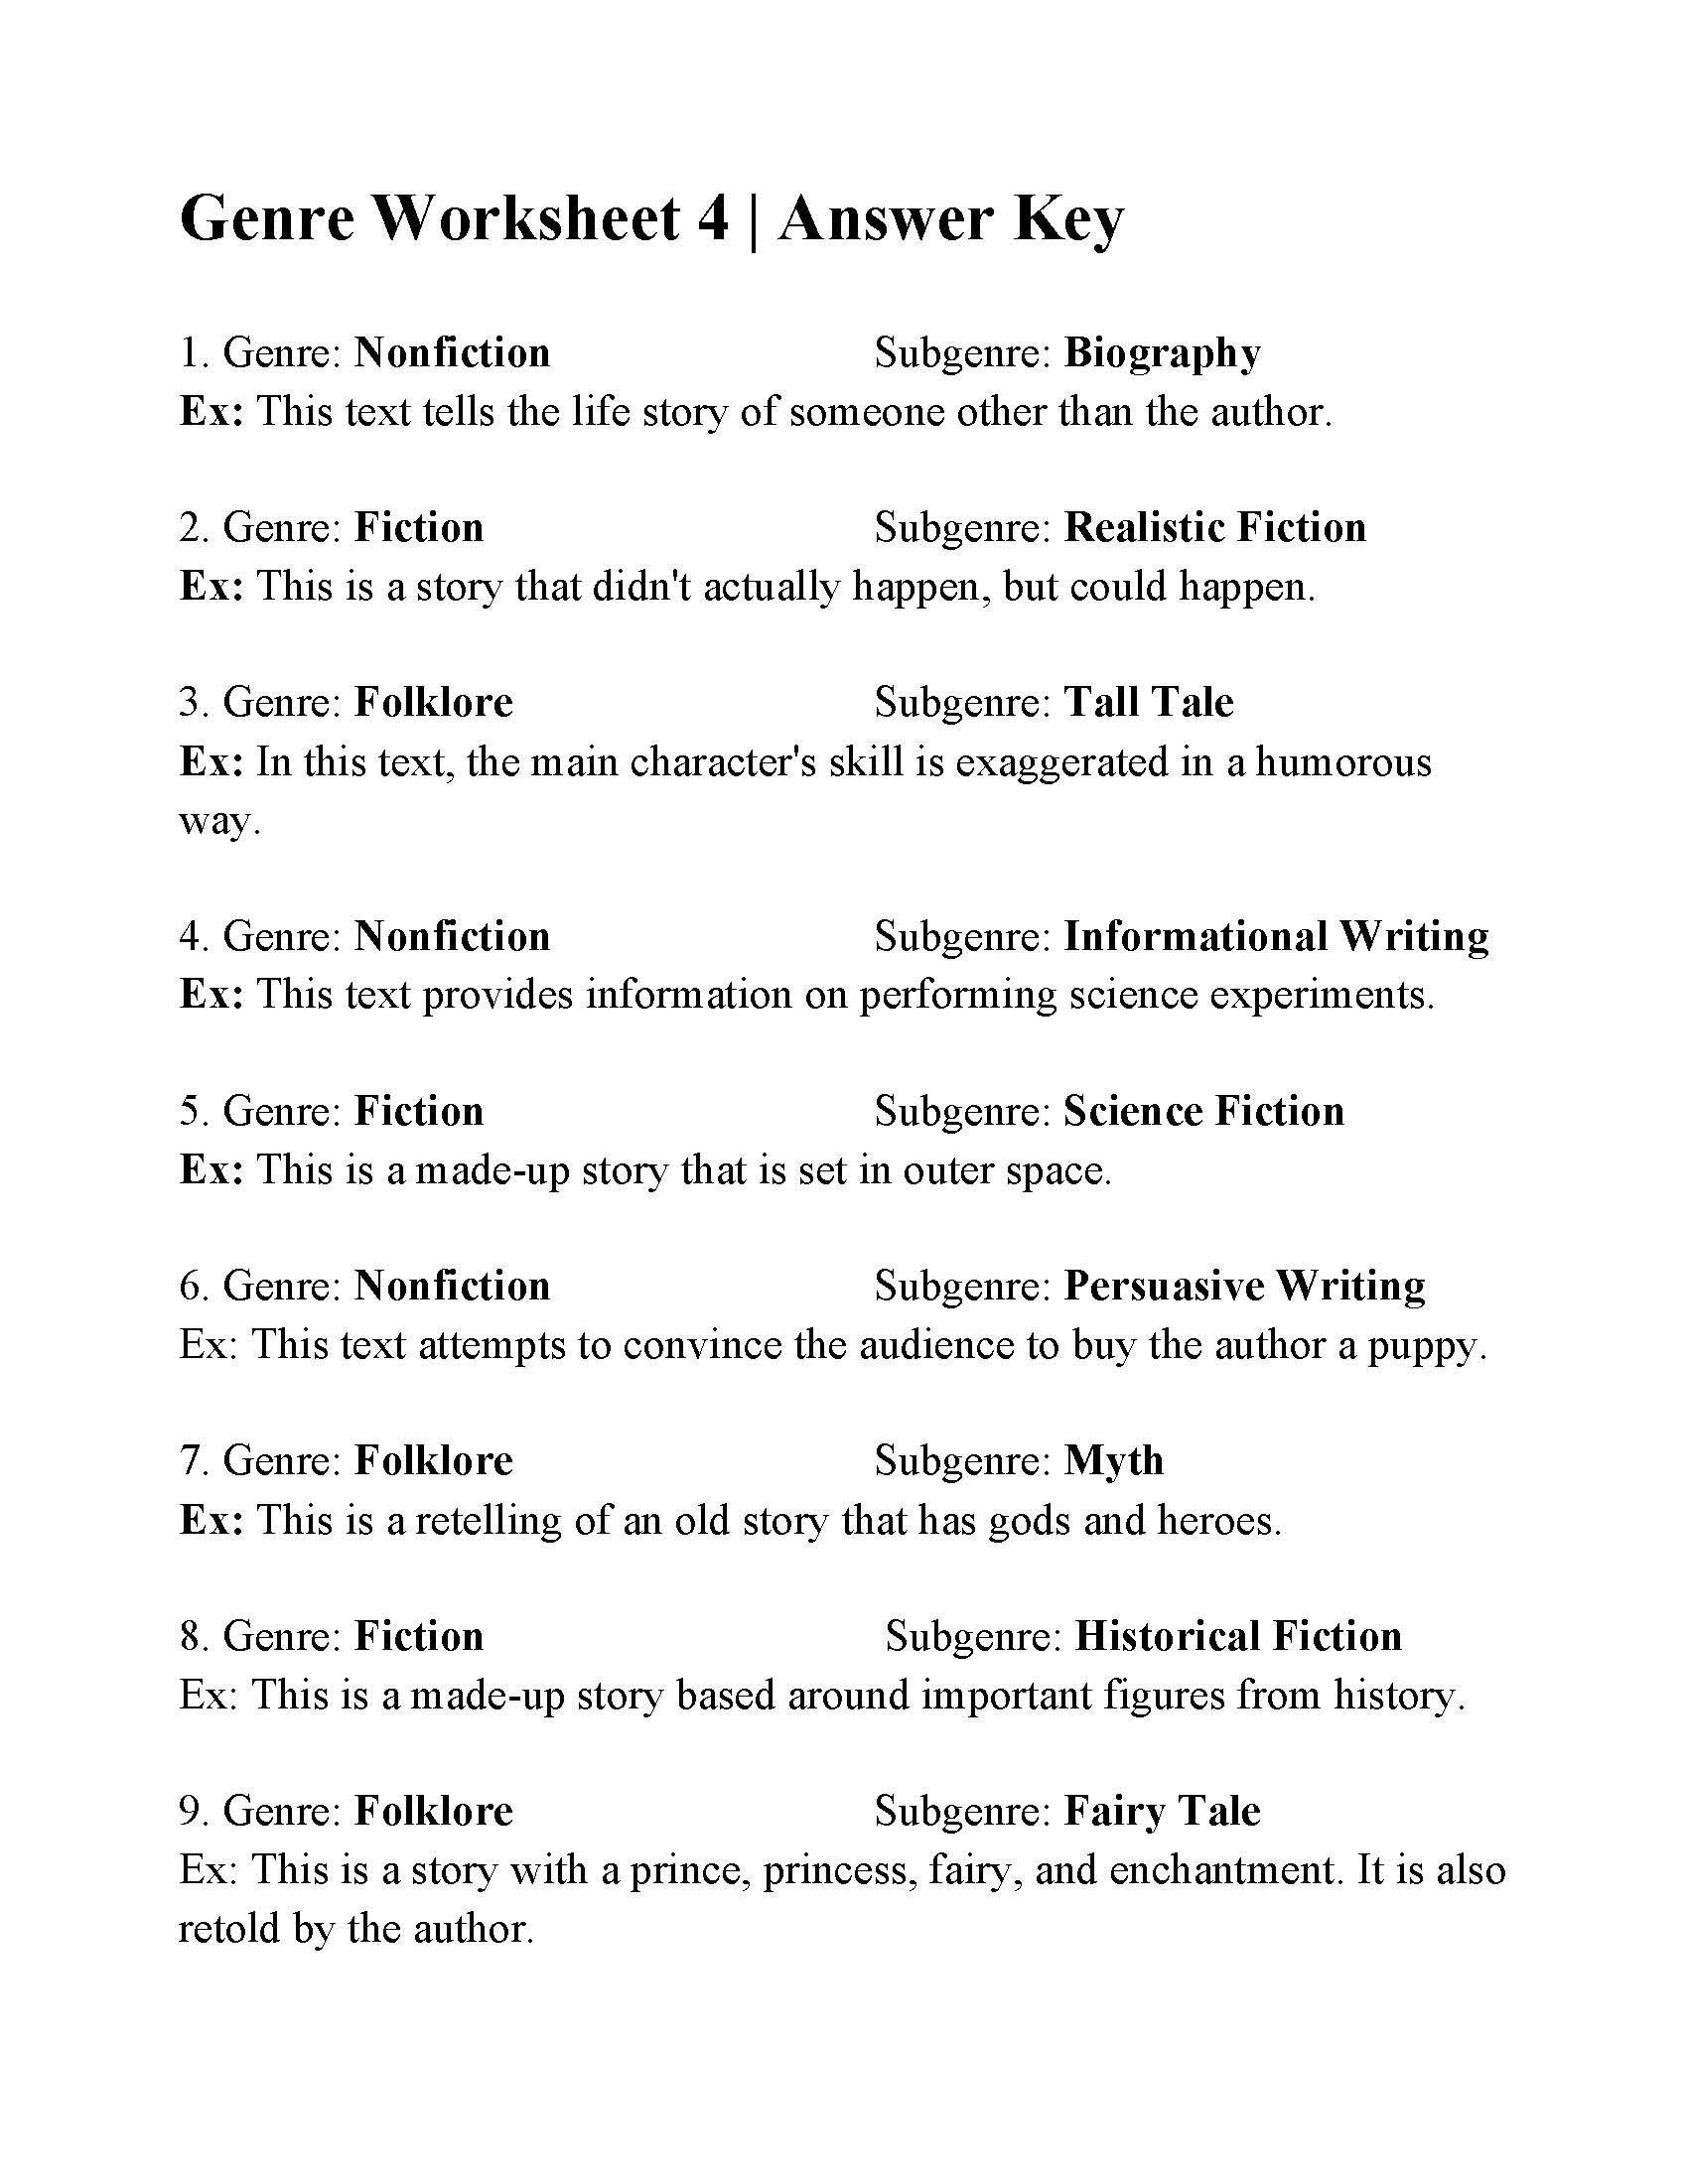 Fiction and Nonfiction Worksheets Pdf Genre Worksheet 4